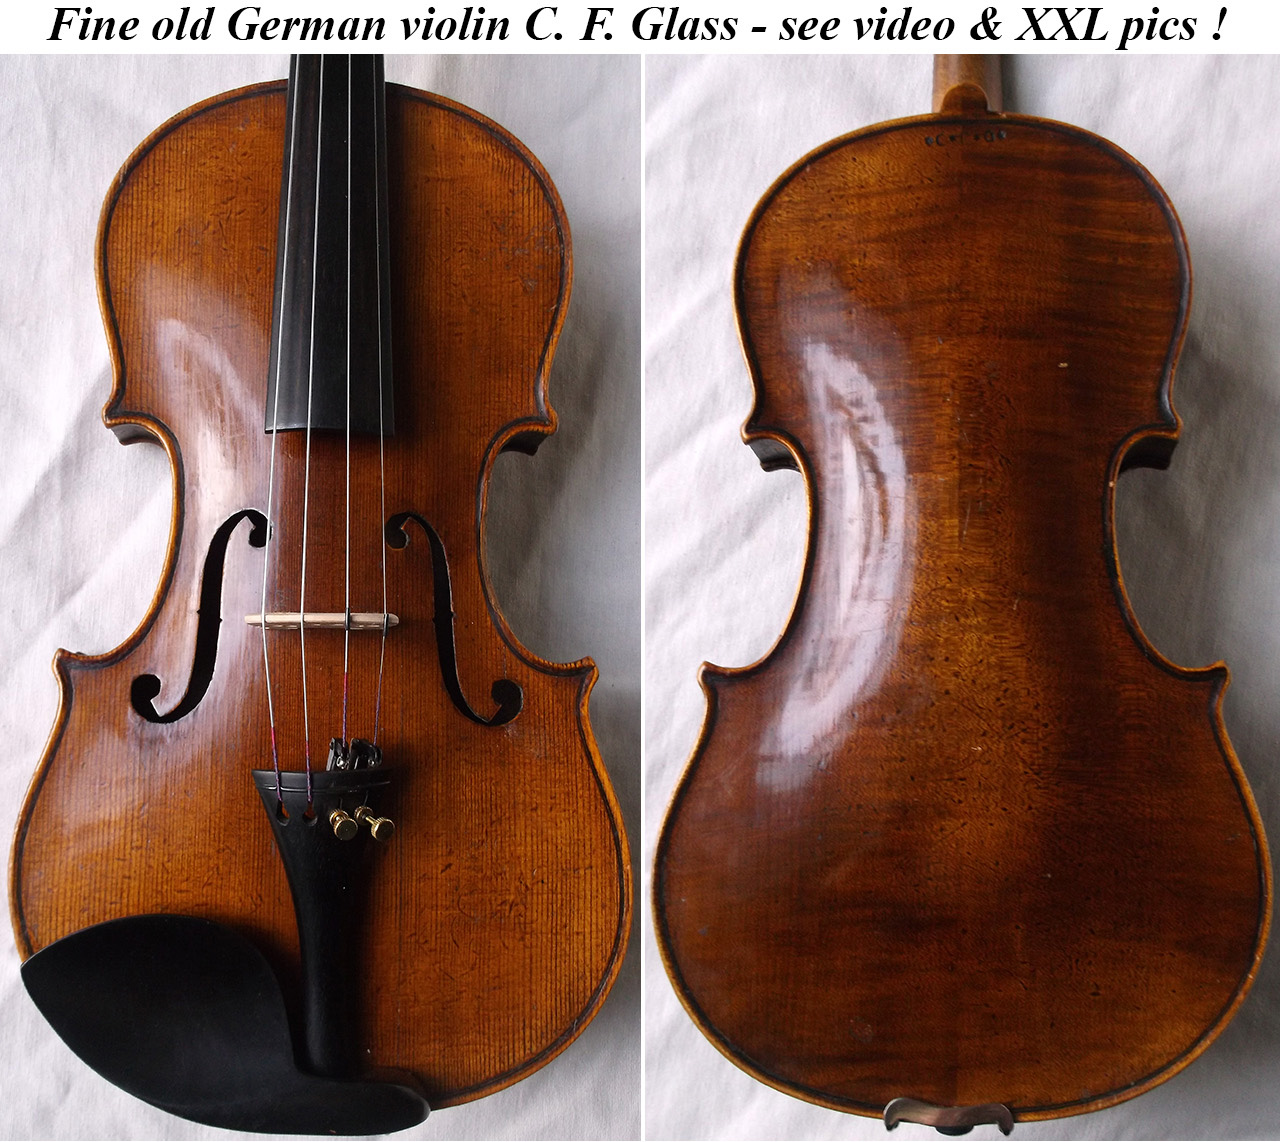 c f glass violin